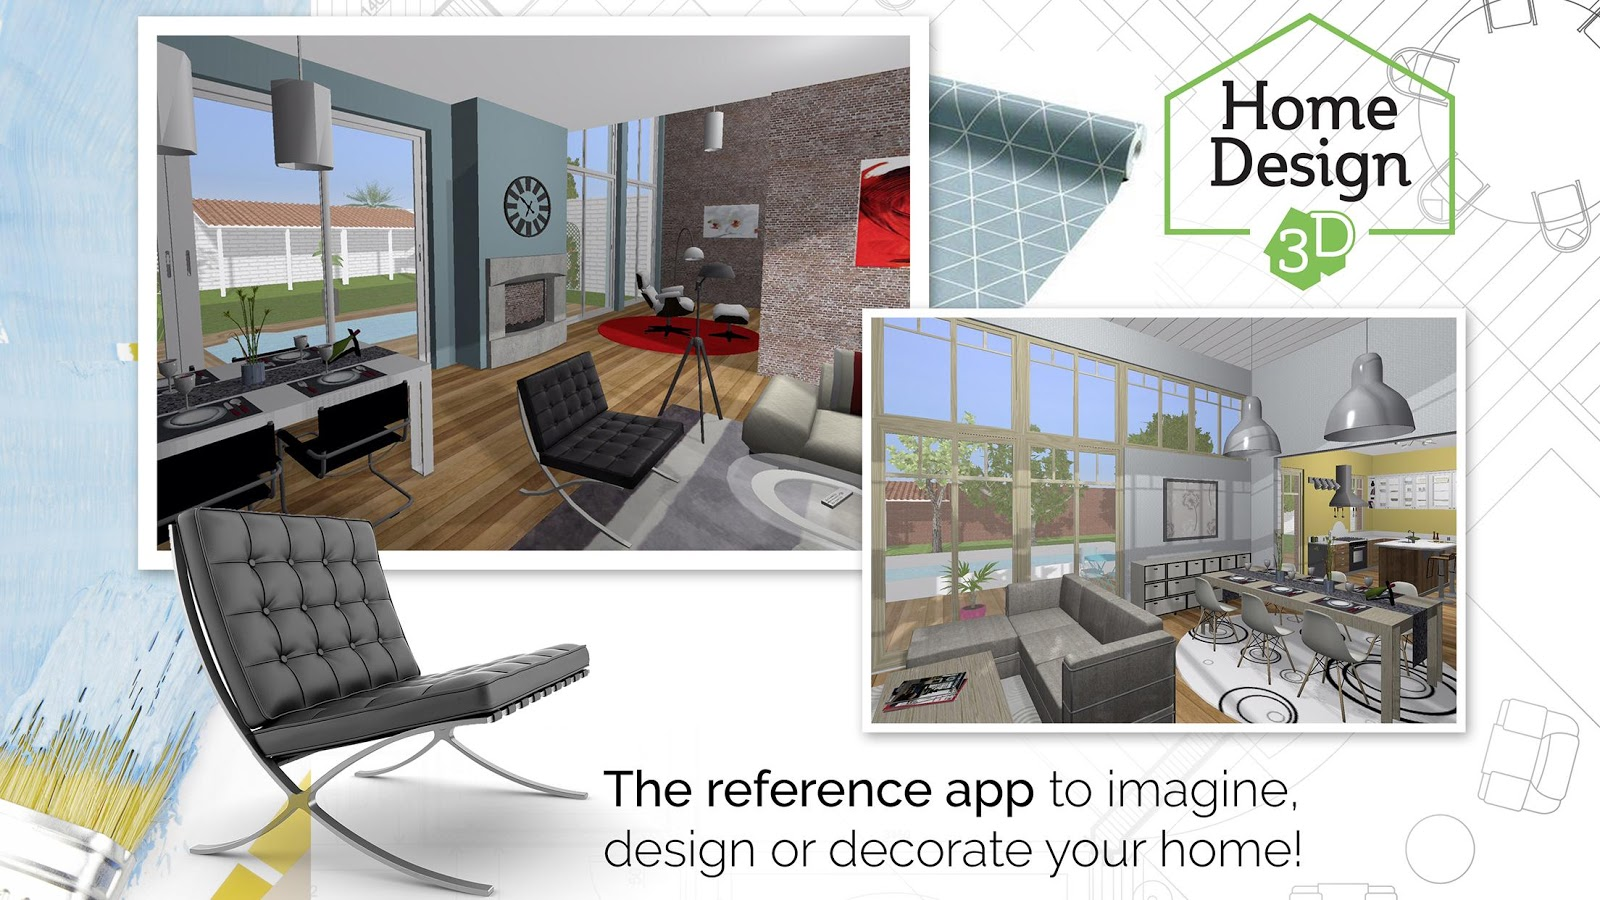 Interior design your house - Home Design 3d Freemium Screenshot